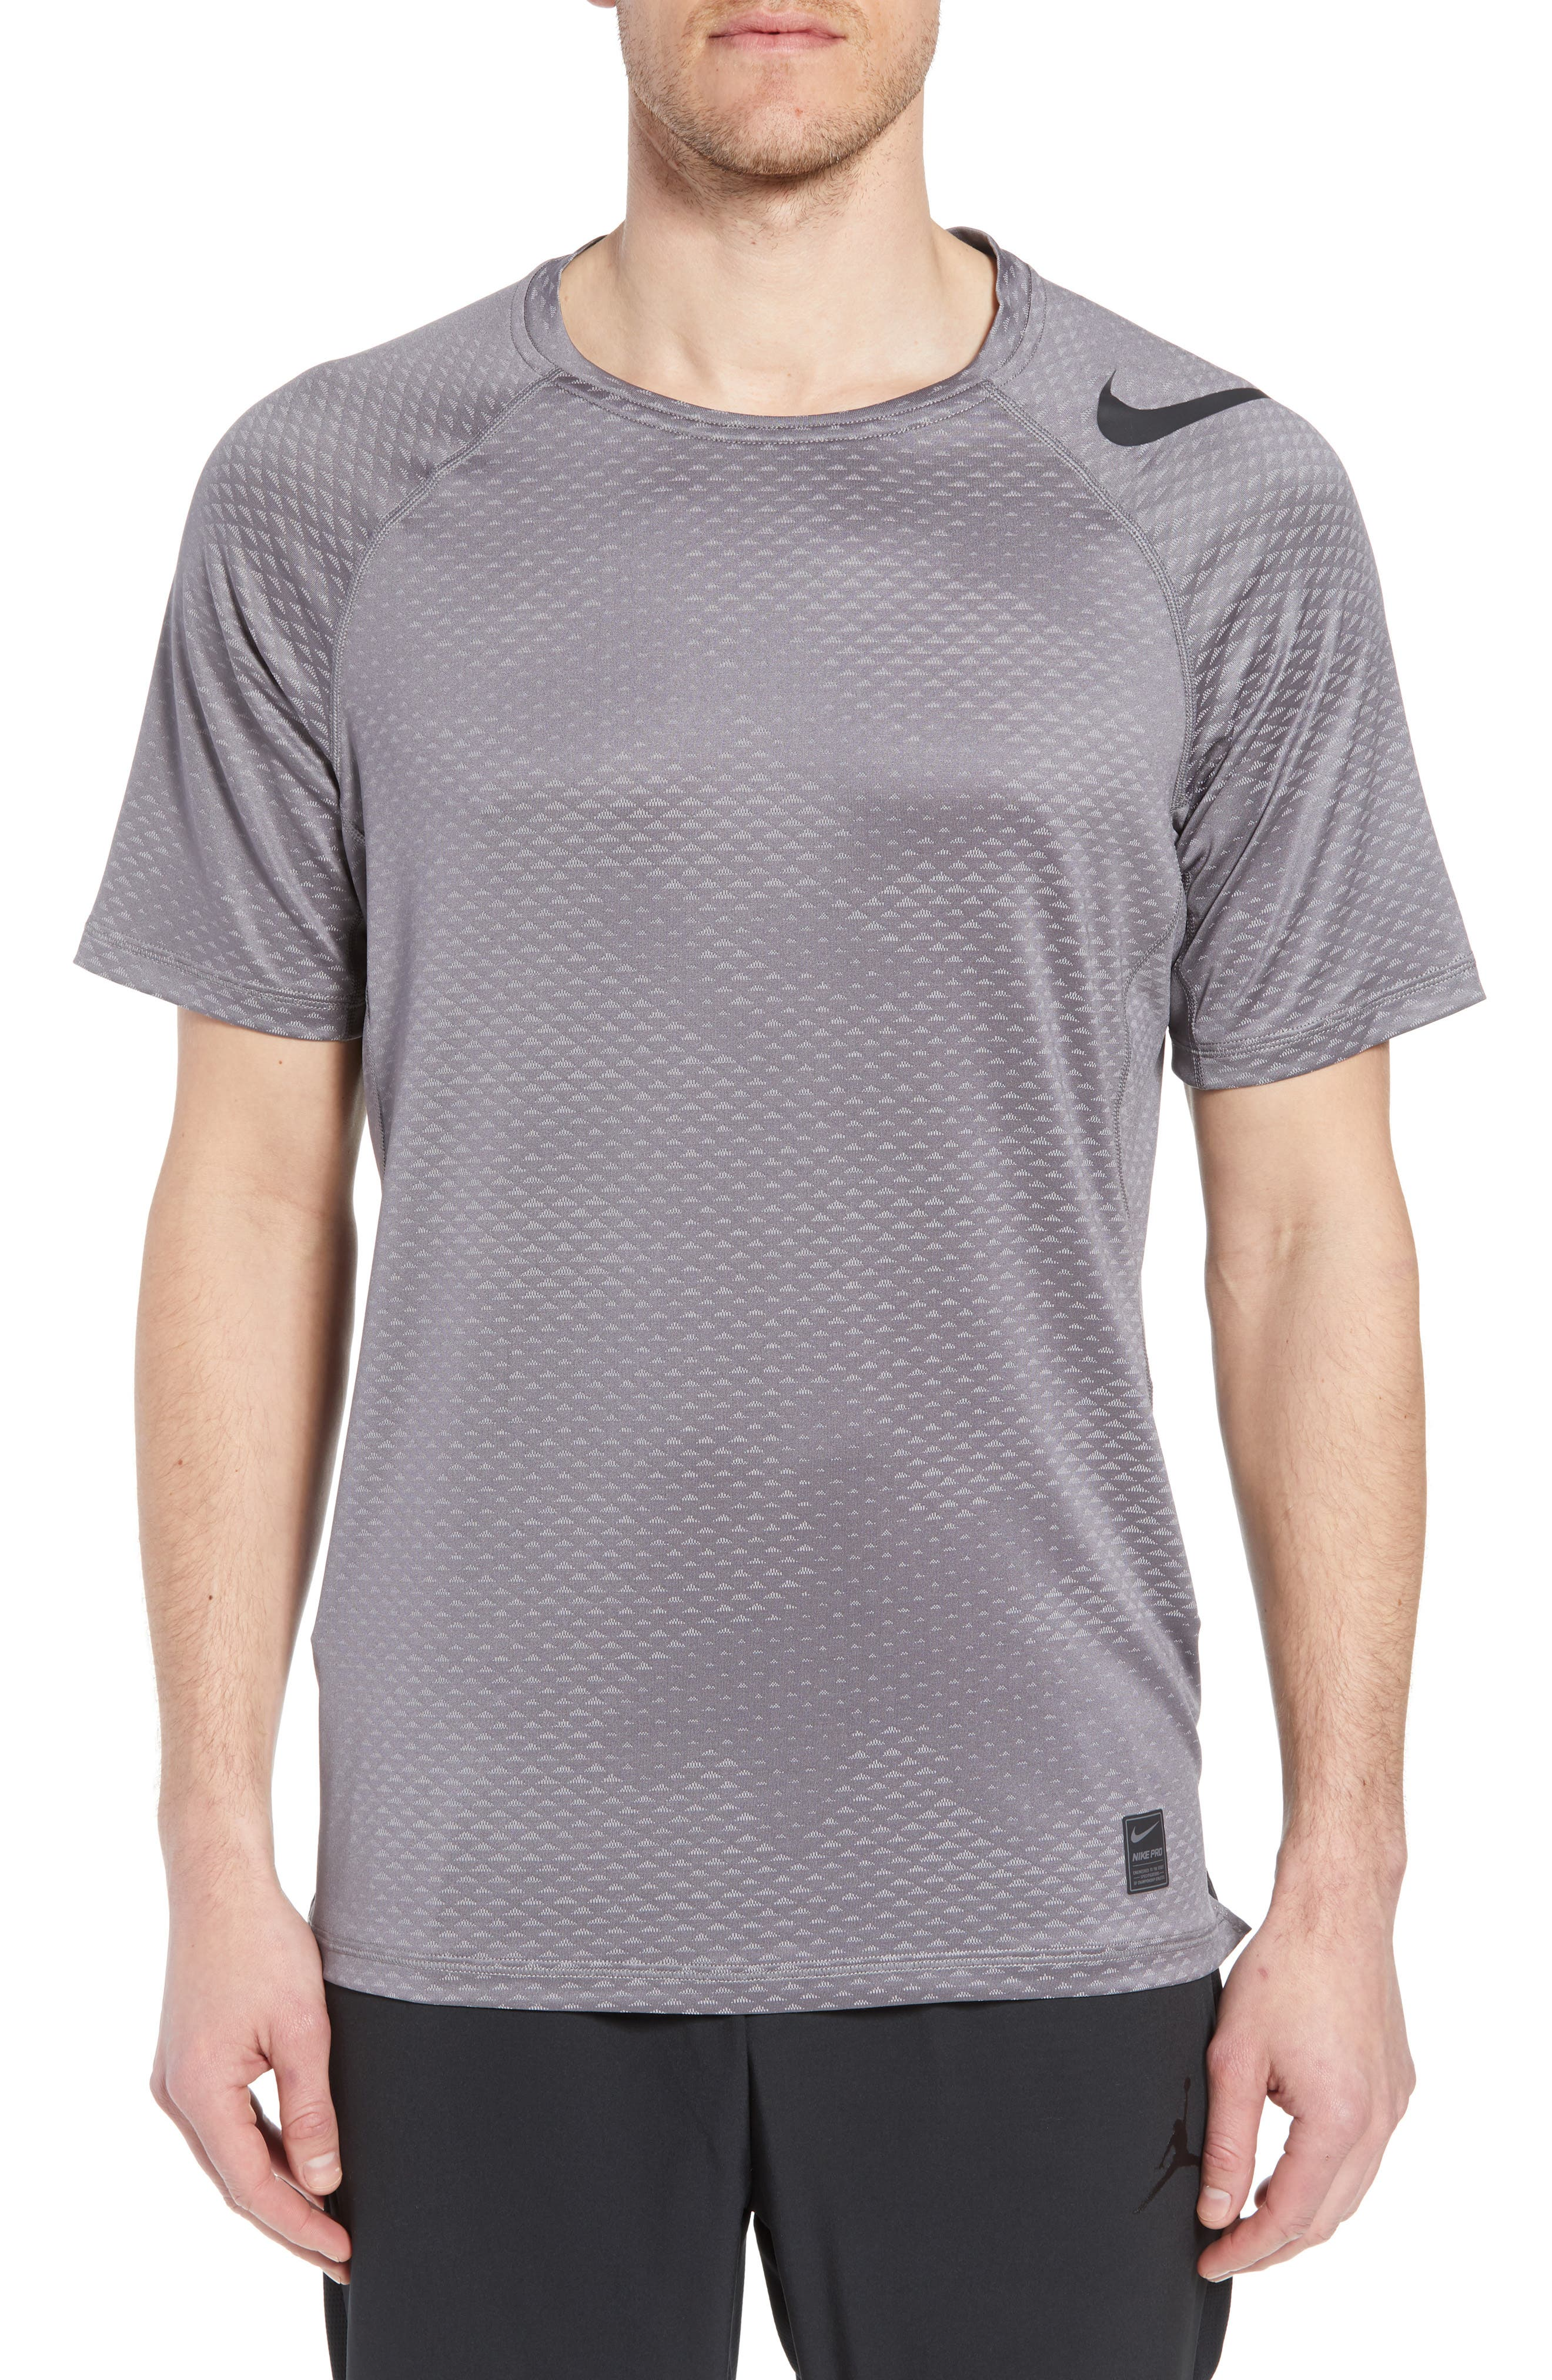 Pro HyperCool Fitted Crewneck T-Shirt,                         Main,                         color, Atmosphere Grey/ Black